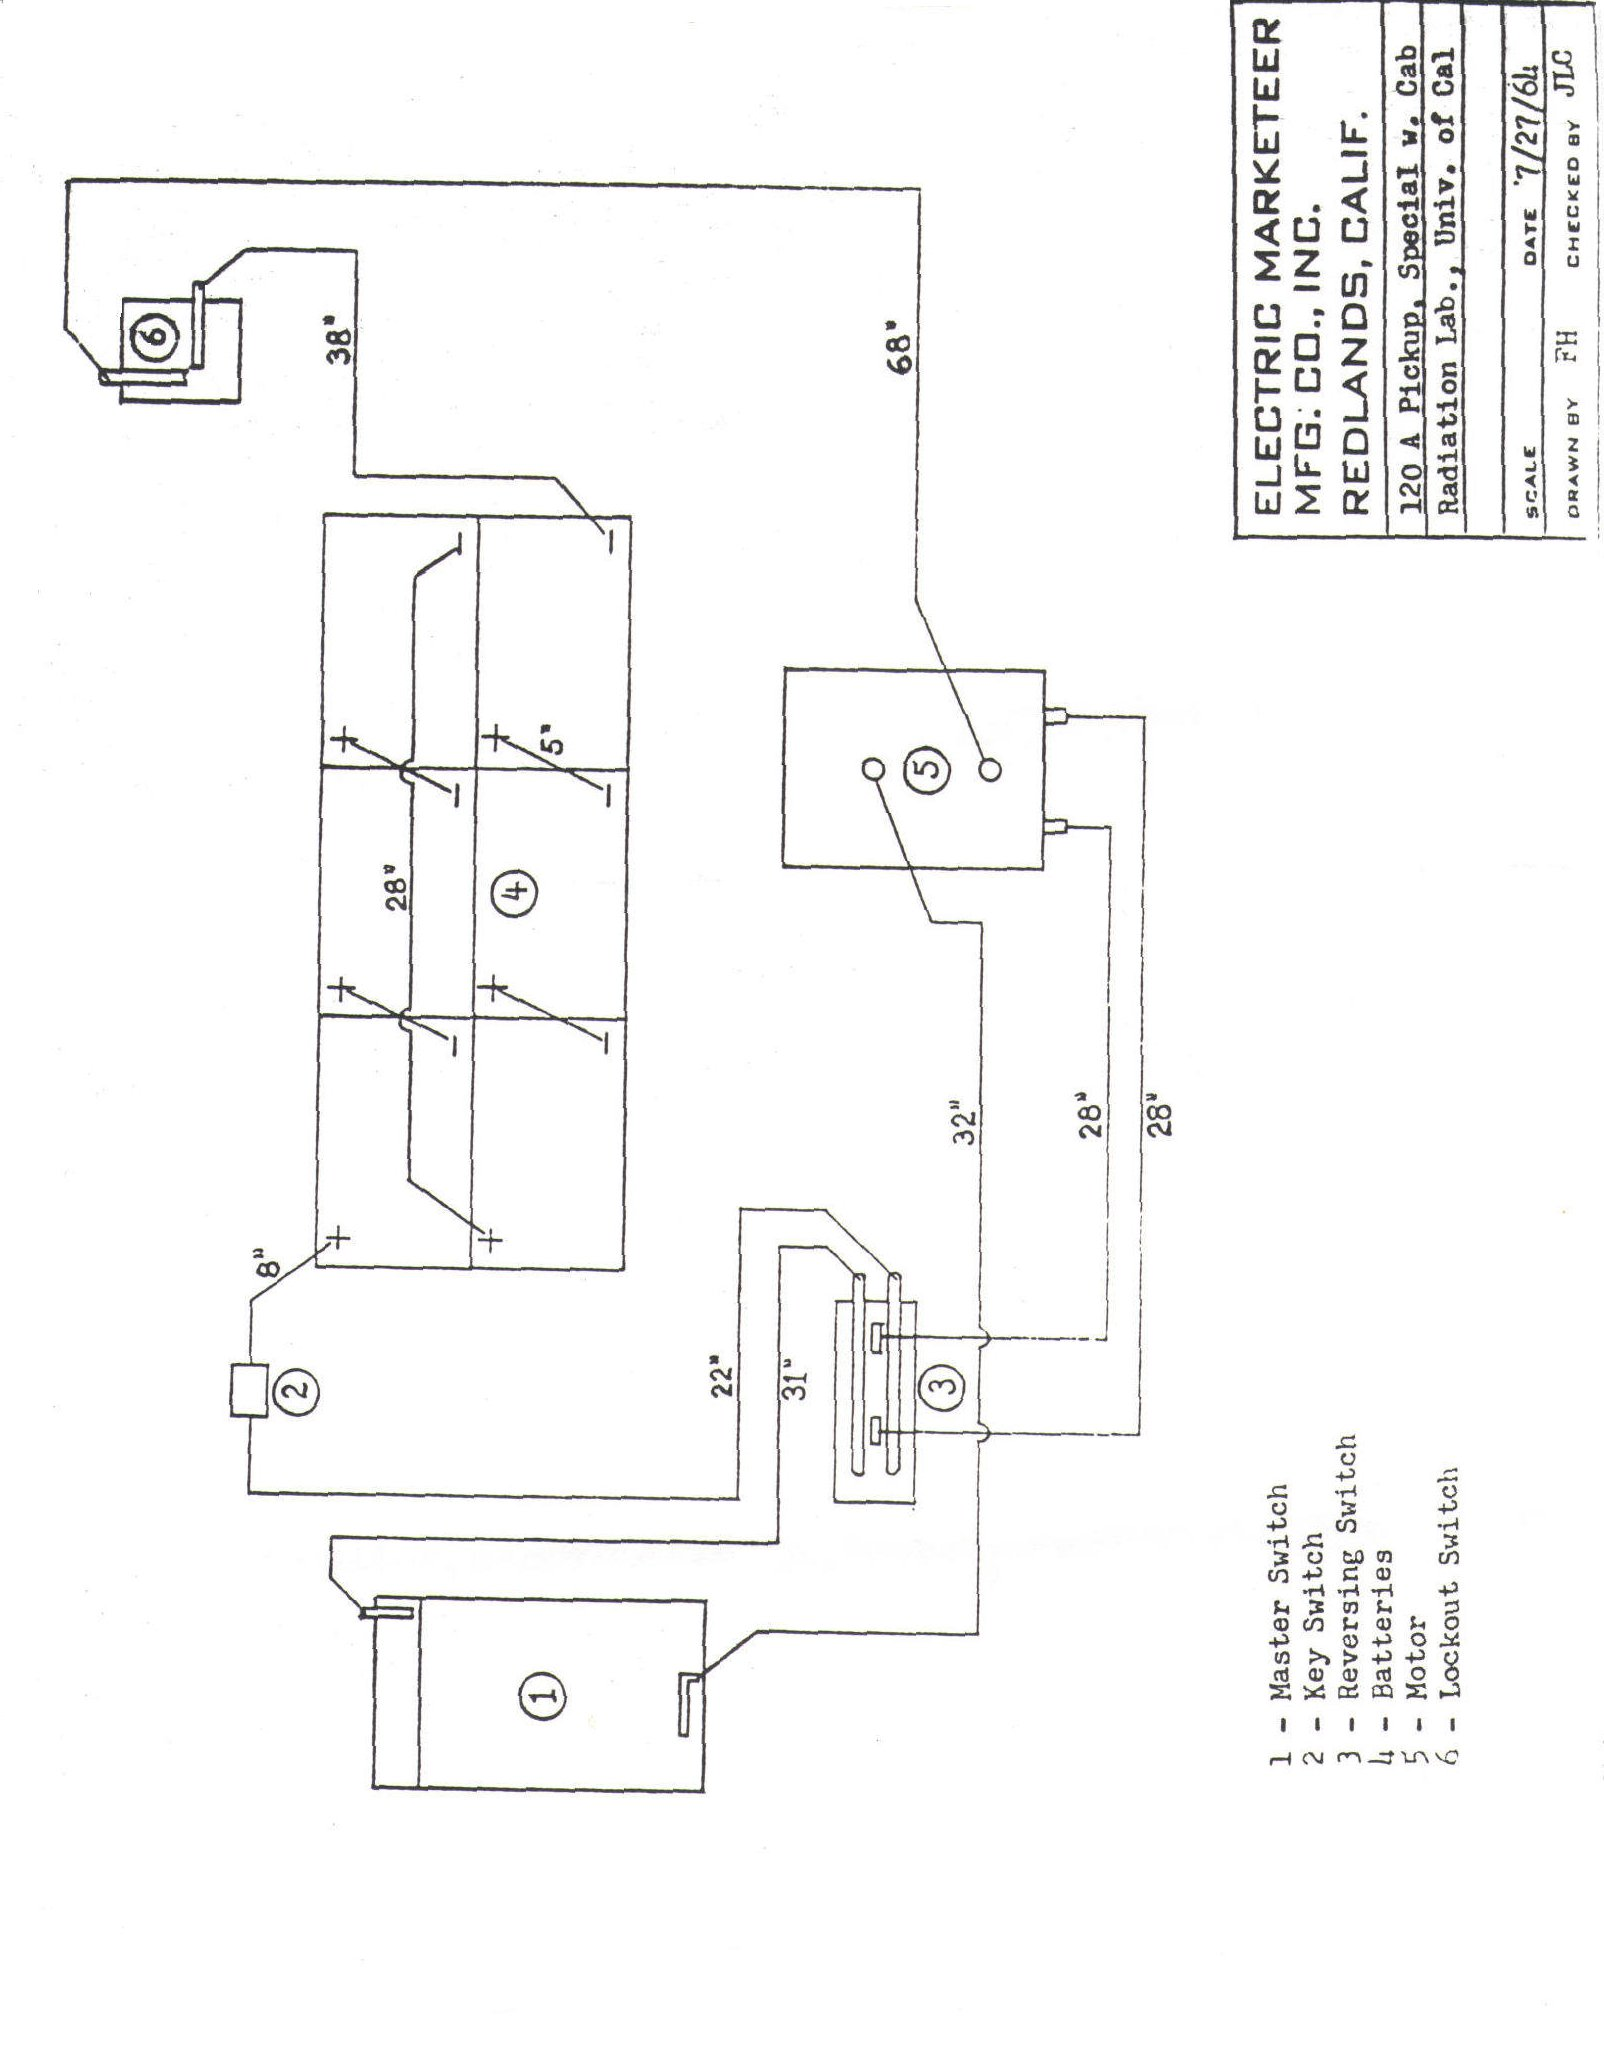 Marketeer Golf Cart Wiring Diagram Electrical Diagrams Zone Electric 48